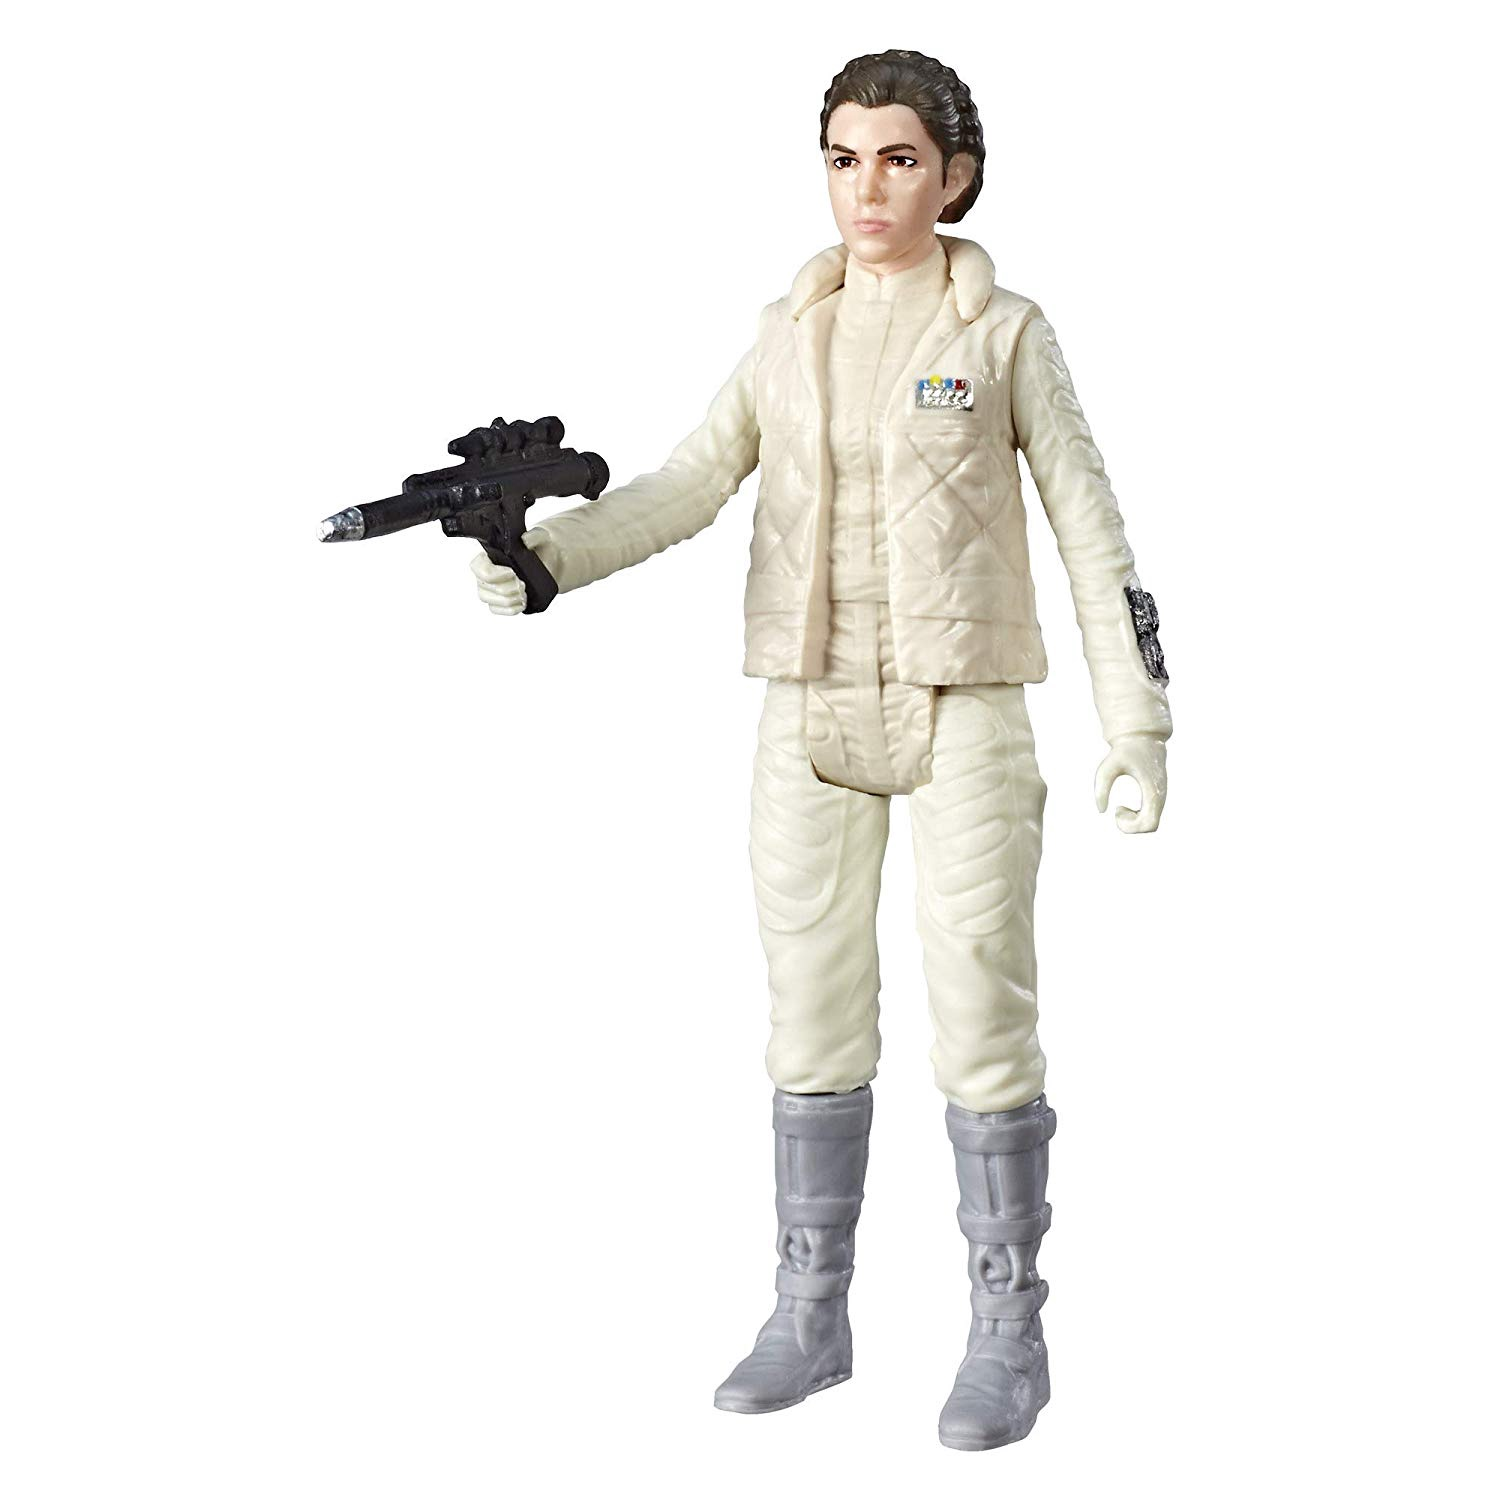 STAR WARS GALAXY OF ADVENTURES PRINCESS LEIA